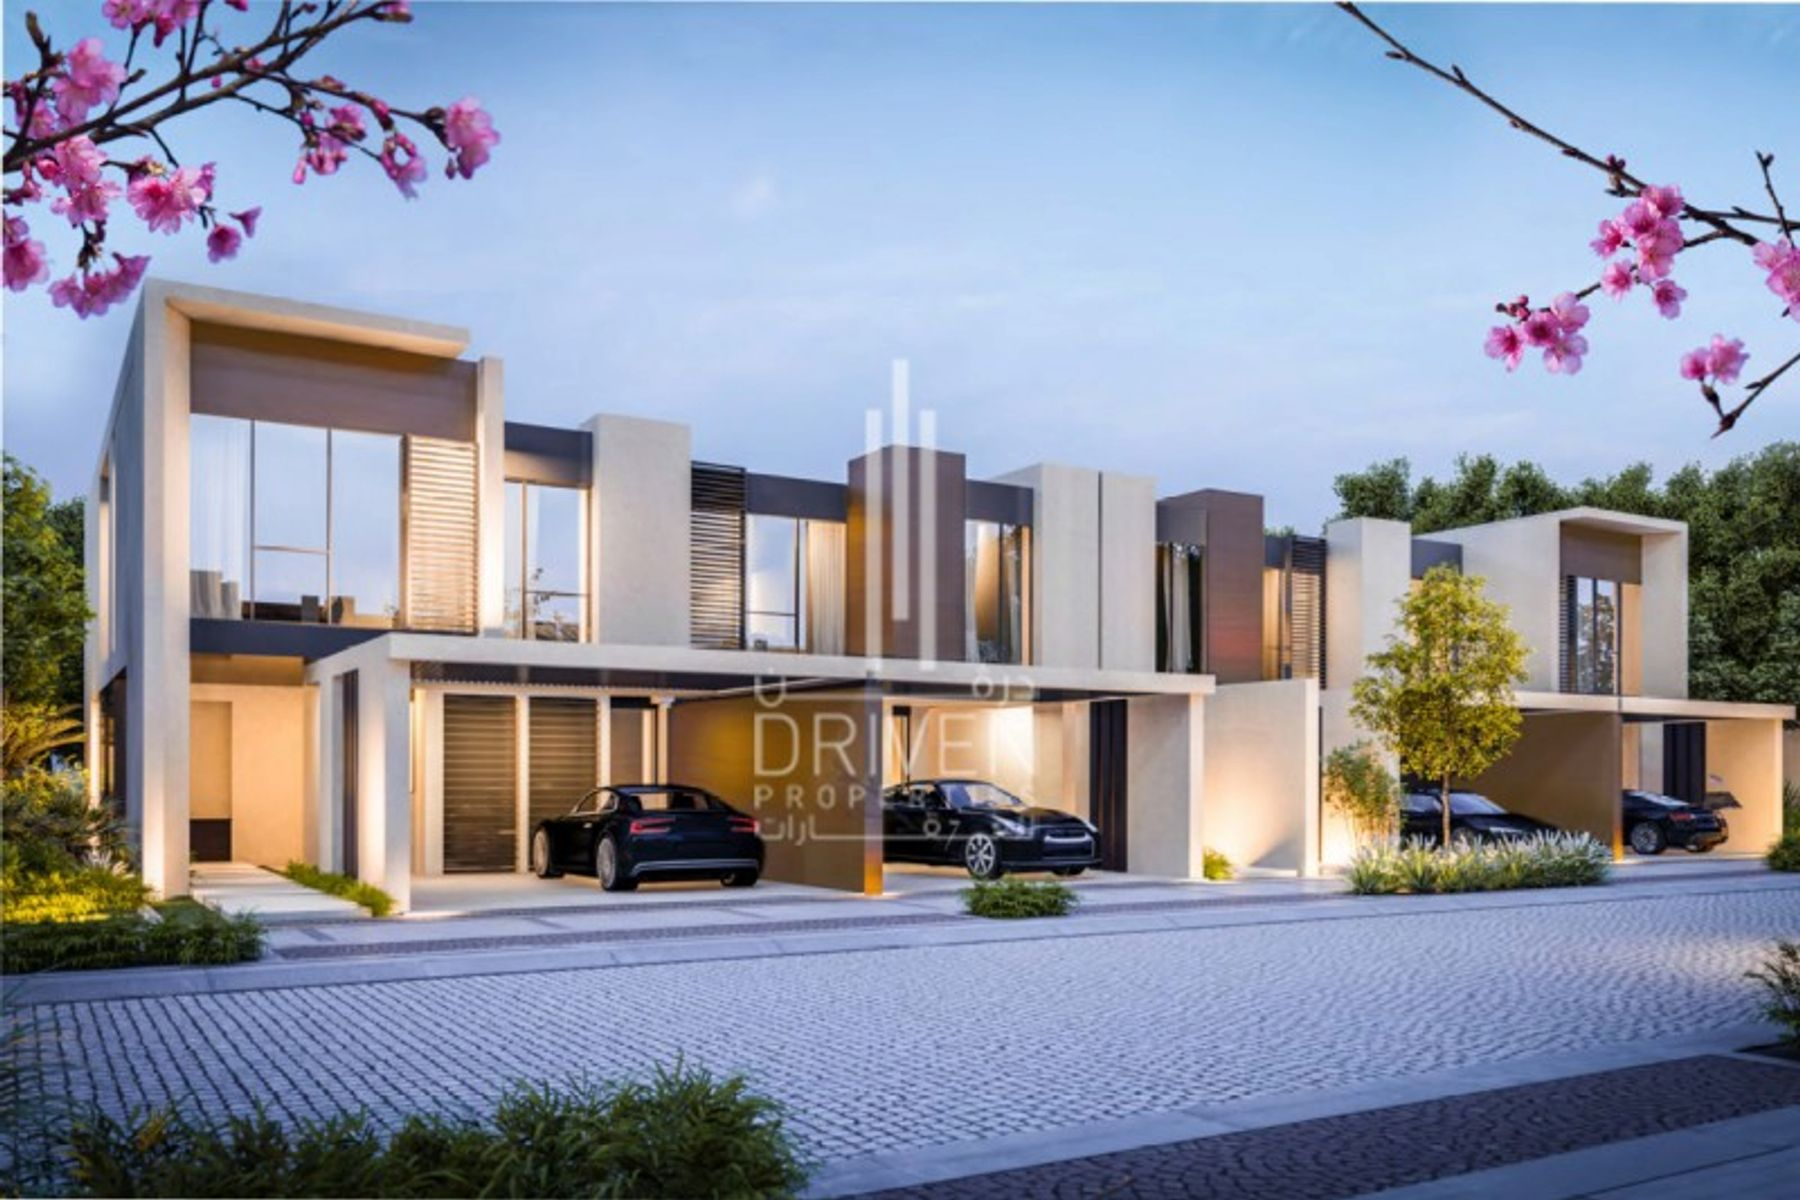 Townhouse for Sale in Cherrywoods - Dubai Land